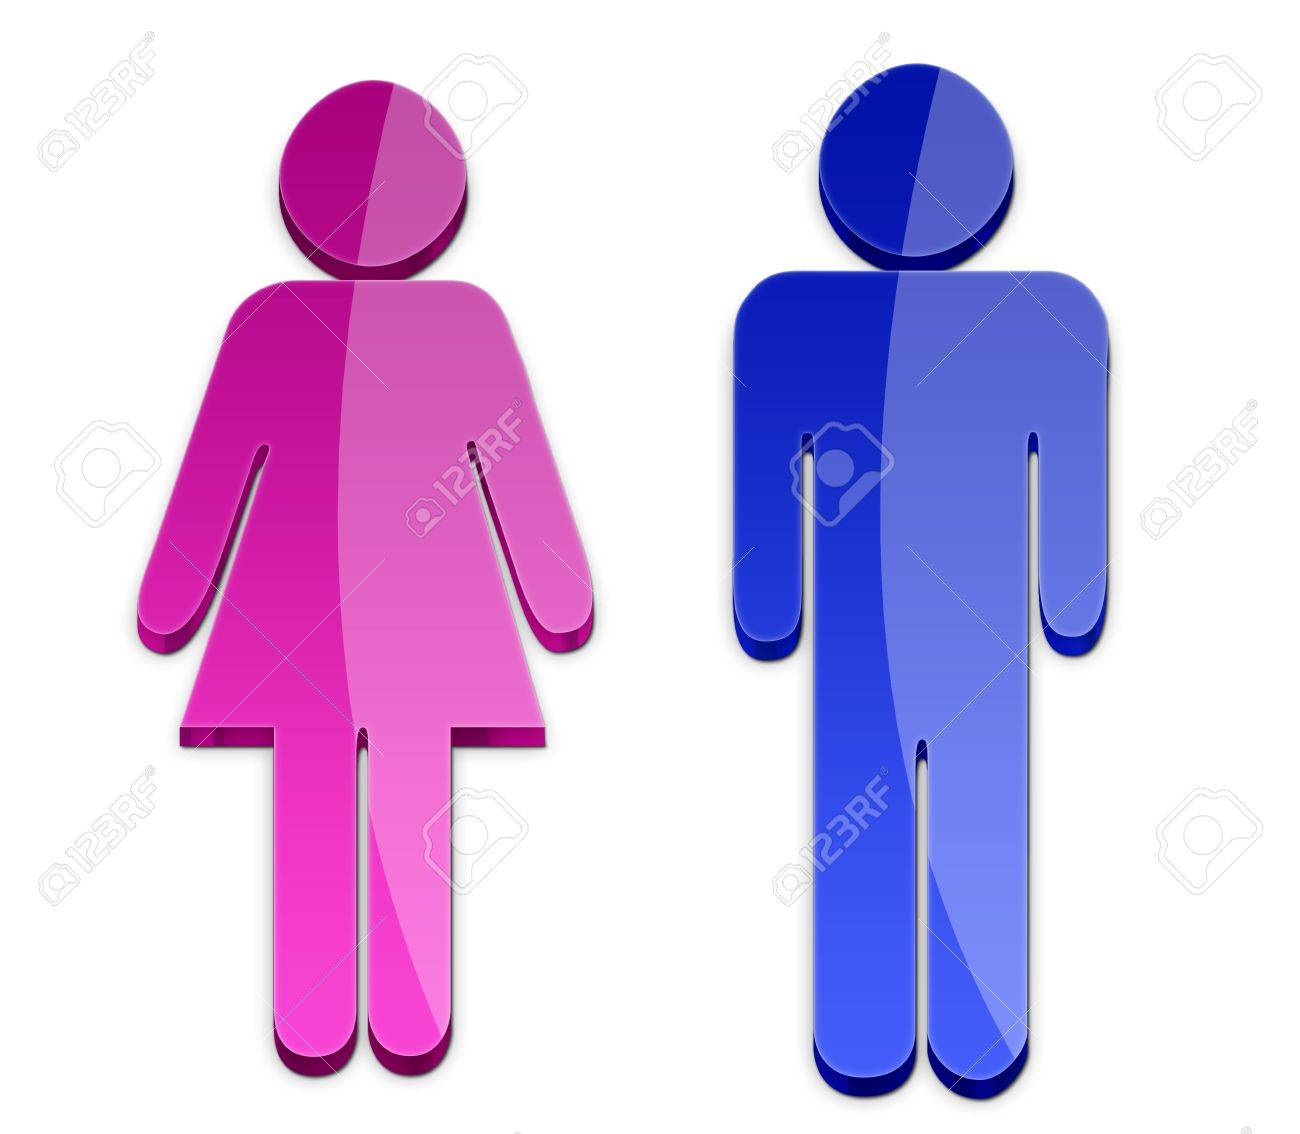 men and women symbol stock photo, picture and royalty free image. image  13297968.  123rf